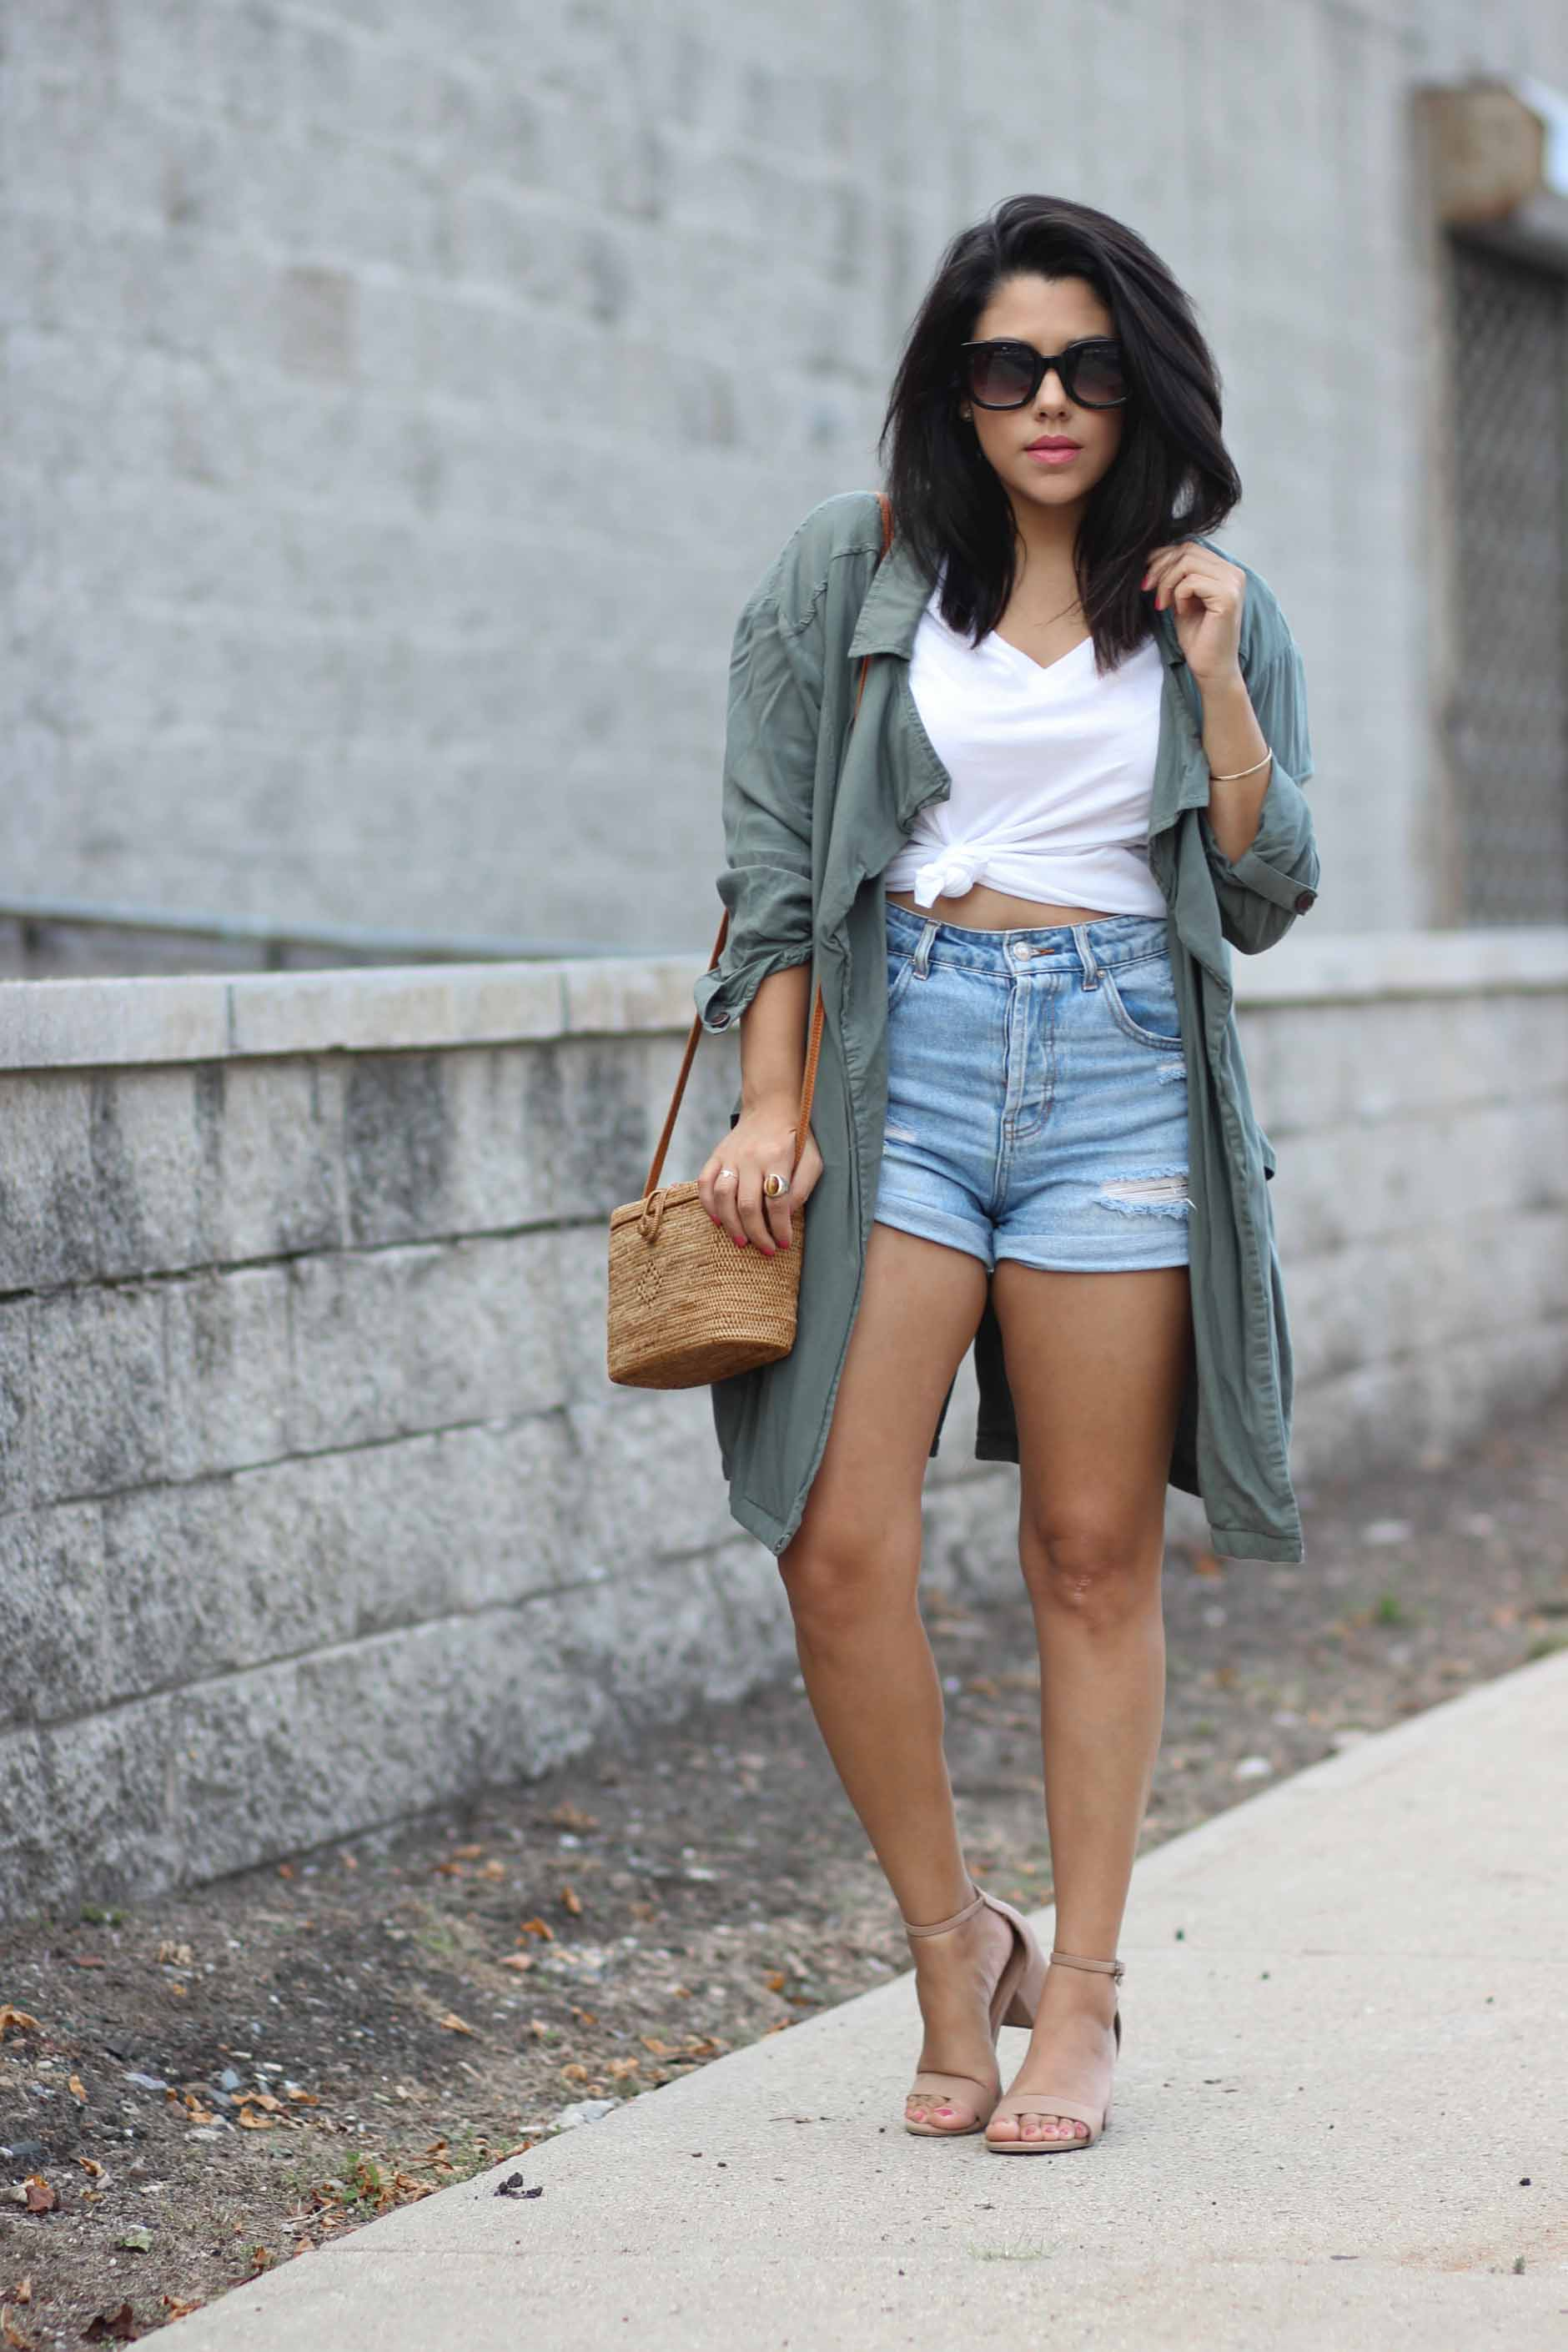 lifestyle blogger naty michele standing in a knotted tee with denim shorts and a draped trench coat